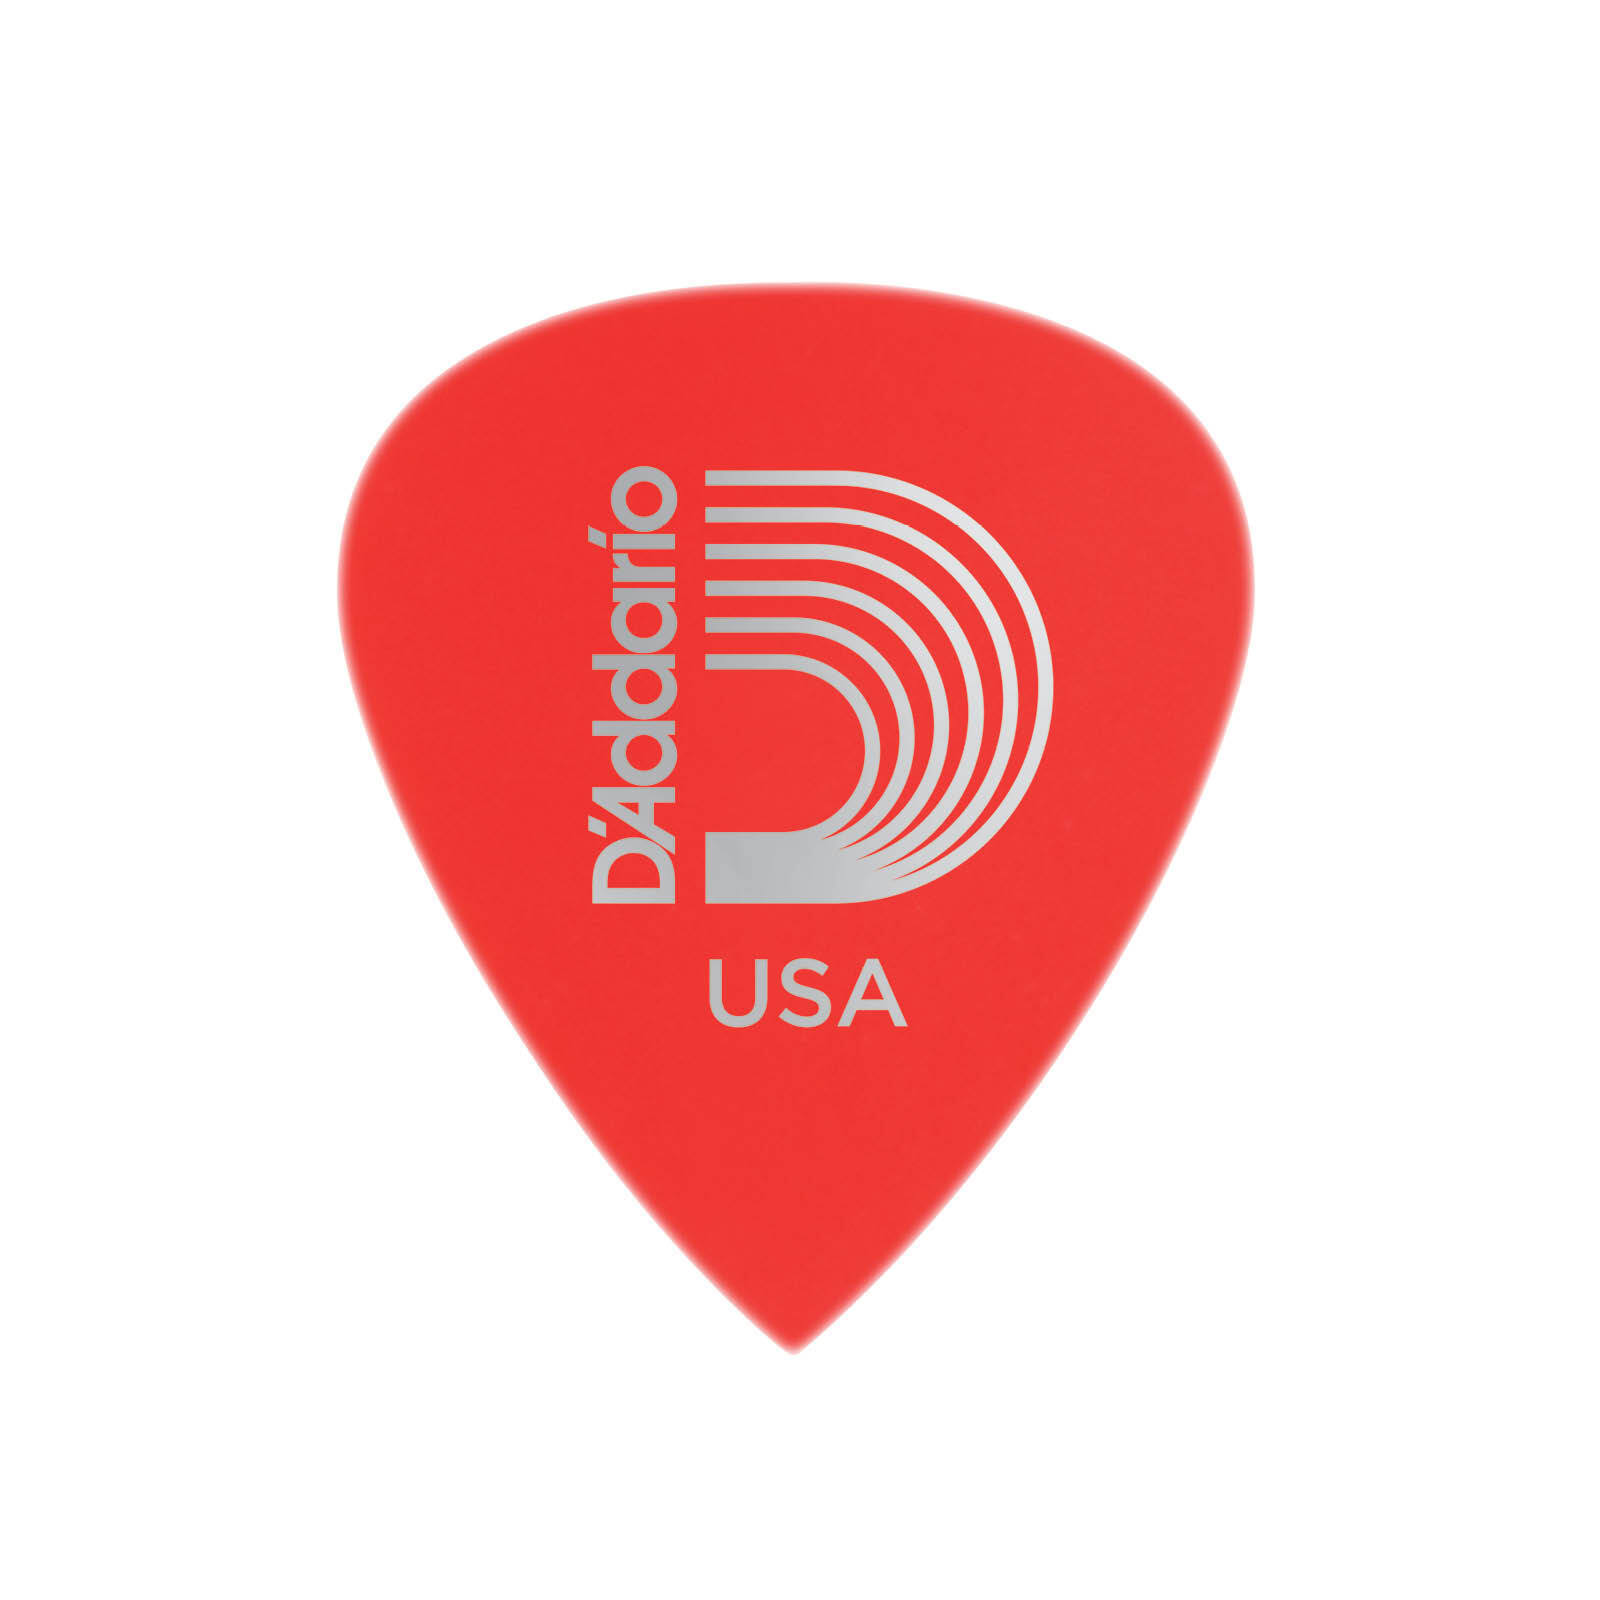 D'ADDARIO RED DURALIN SUPER LIGHT 0.50MM PICKS 10 PACK